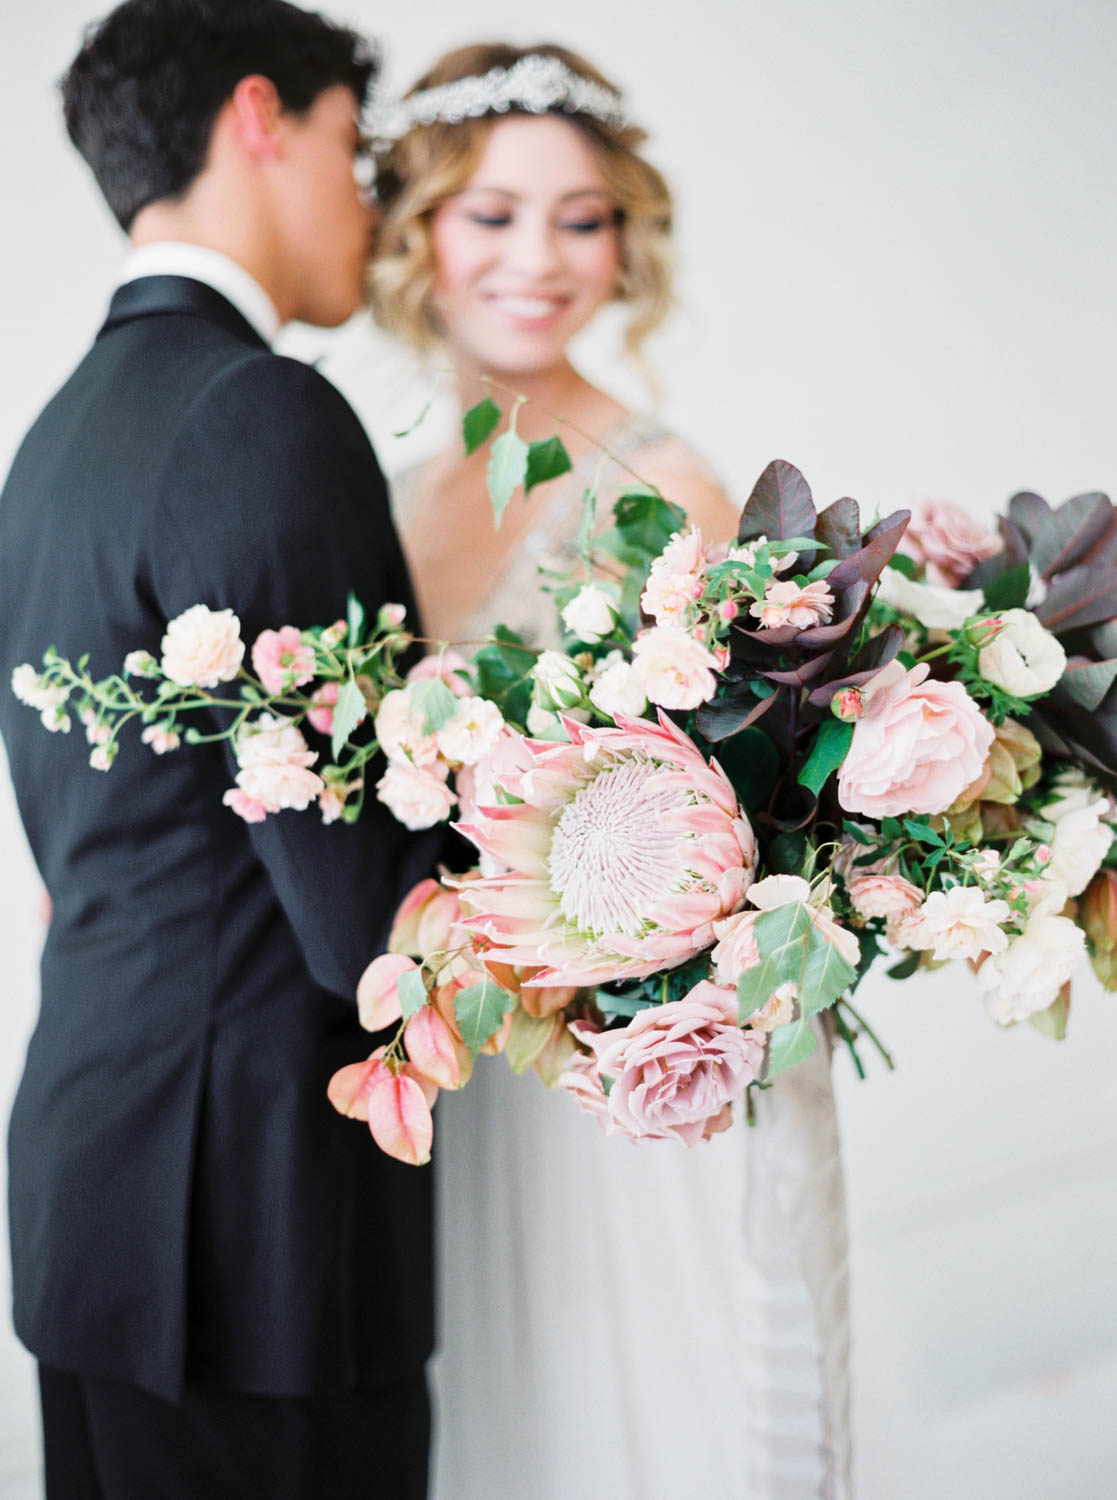 Bride holding bouquet of pink green deep colors with pops of white by Oak and the Owl, Cavin Elizabeth Photography